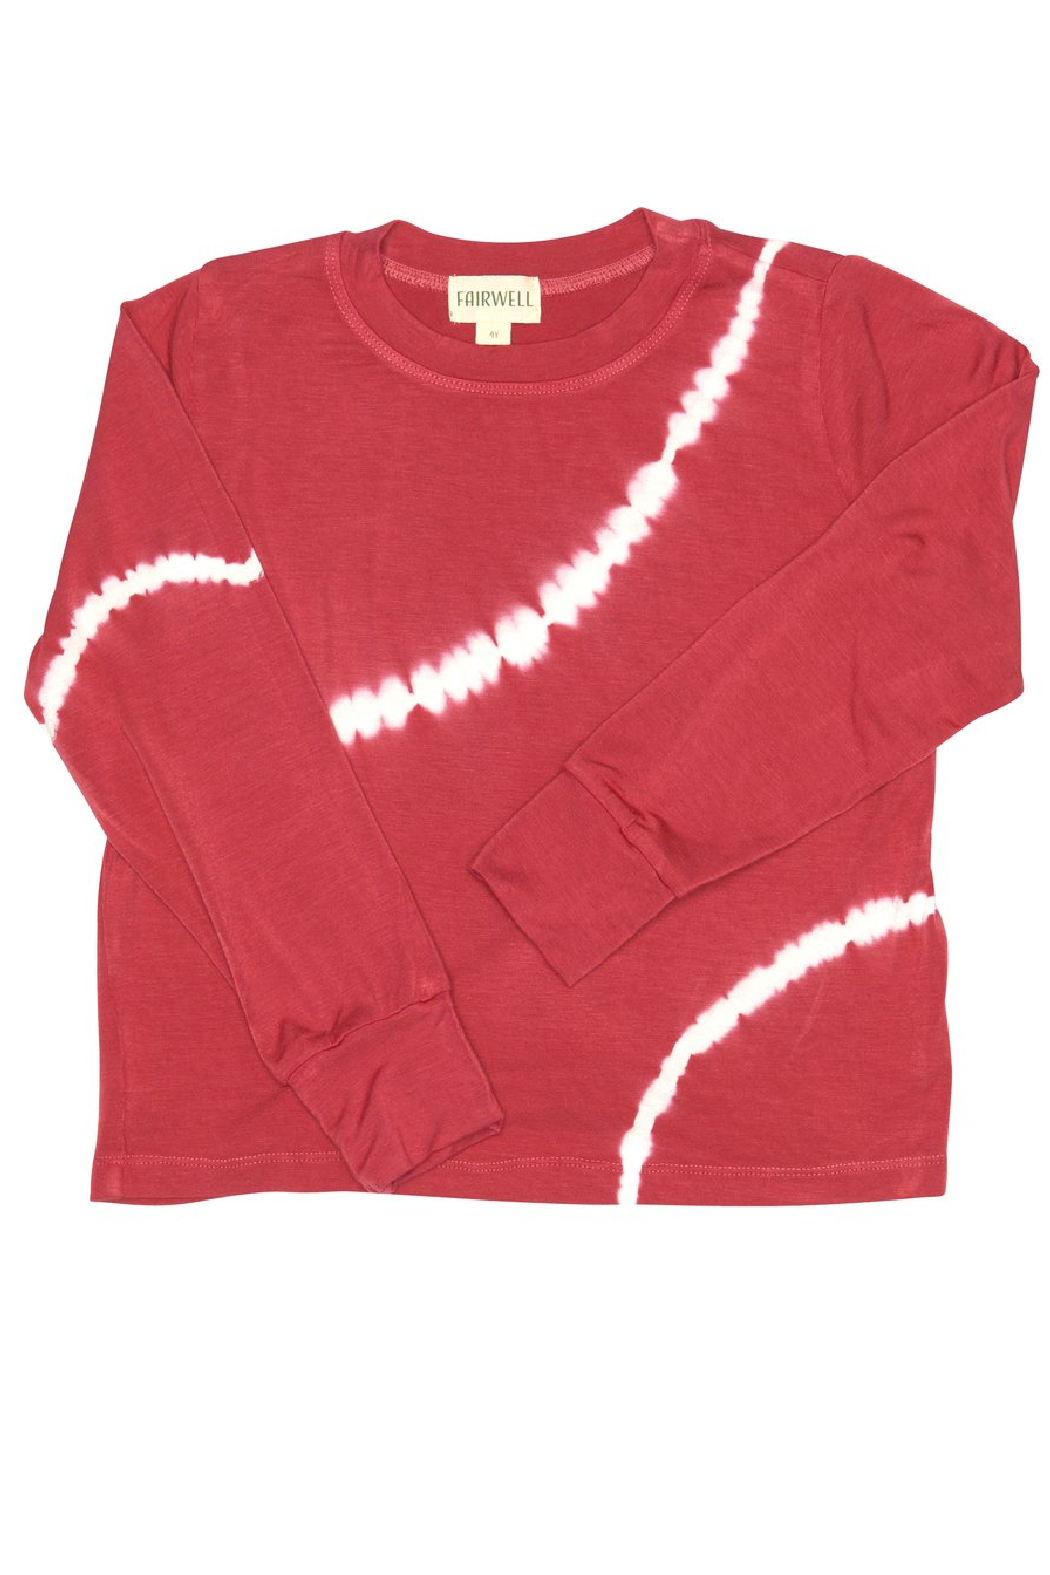 Fairwell Bamboo Top - Cranberry - Main Image